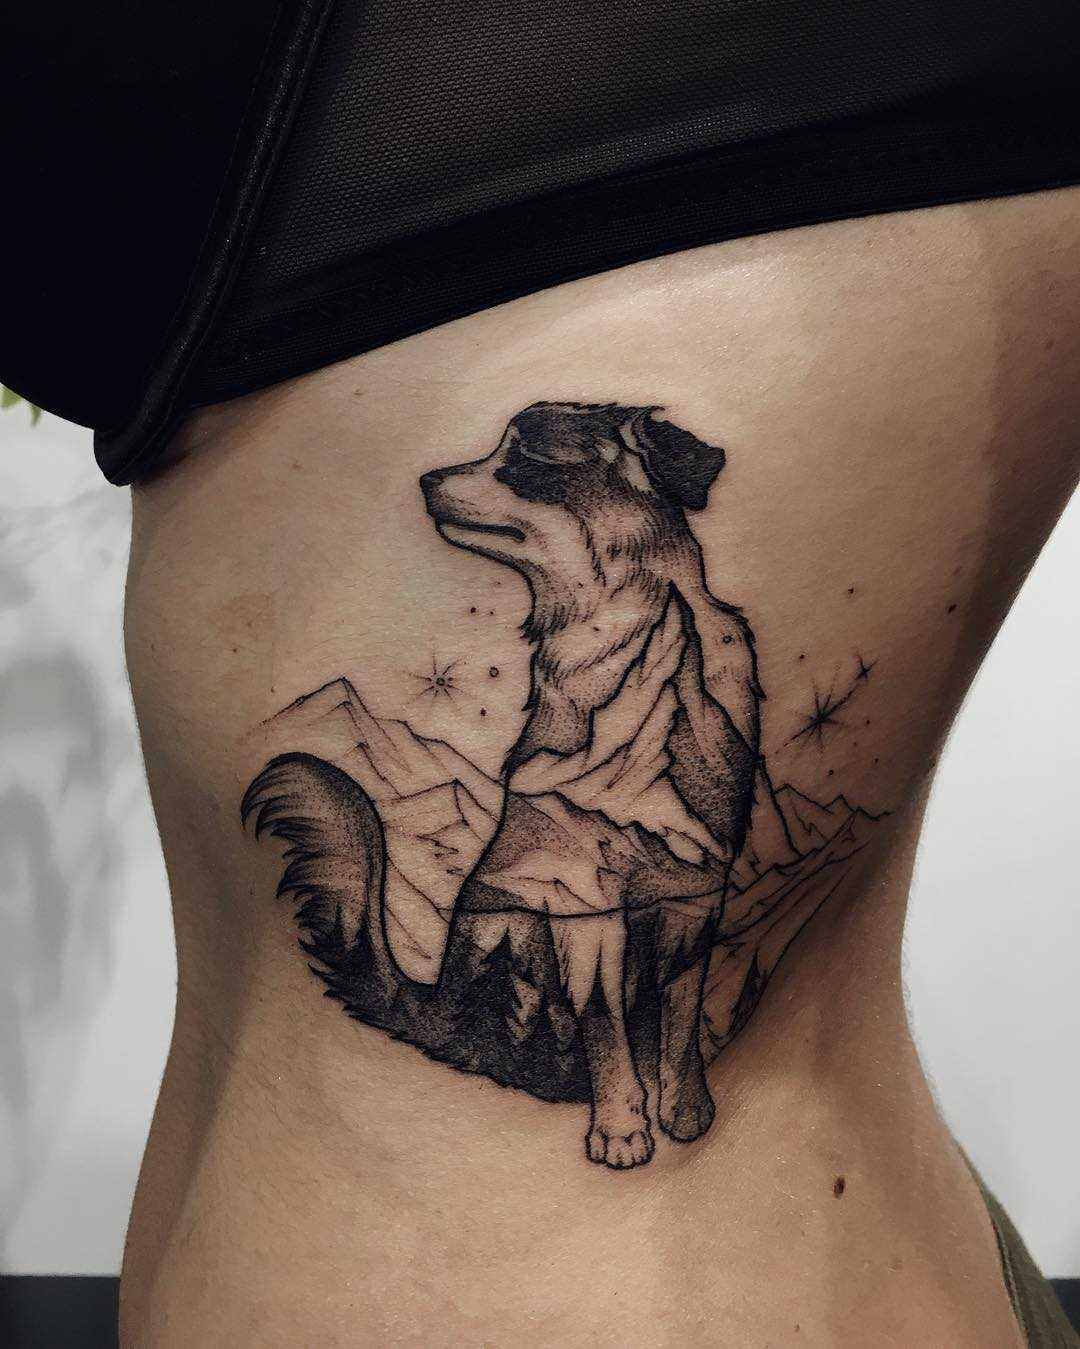 Double exposure dog and mountains tattoo